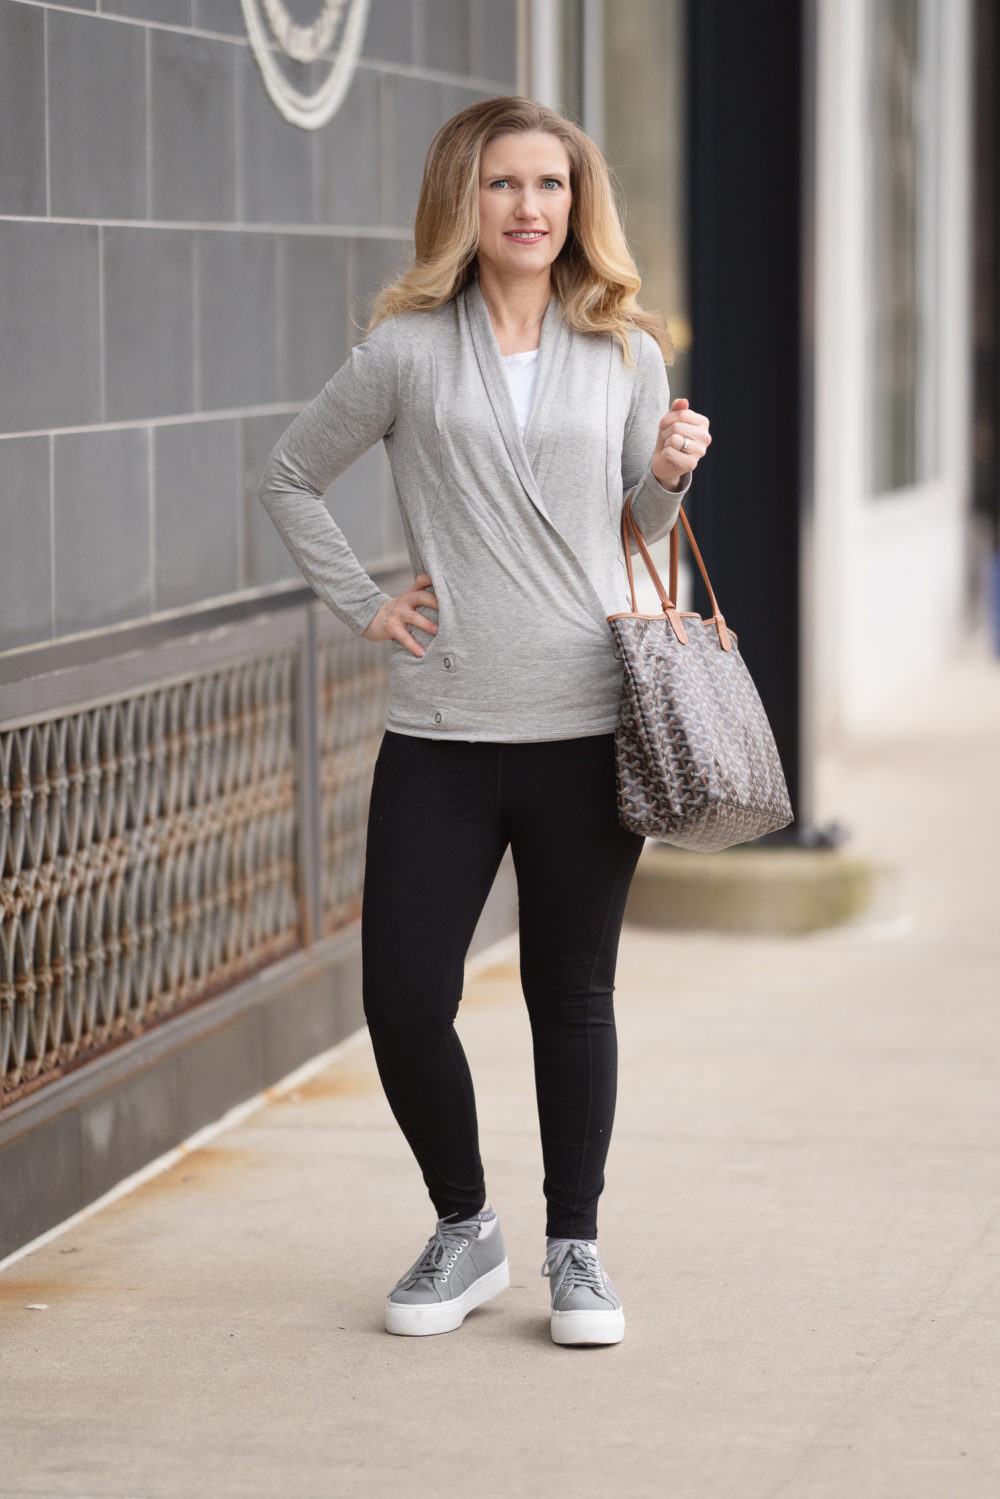 Petite Fashion and Style Blog | J. Jill Fit Collection | How to Keep Your Fitness Resolutions